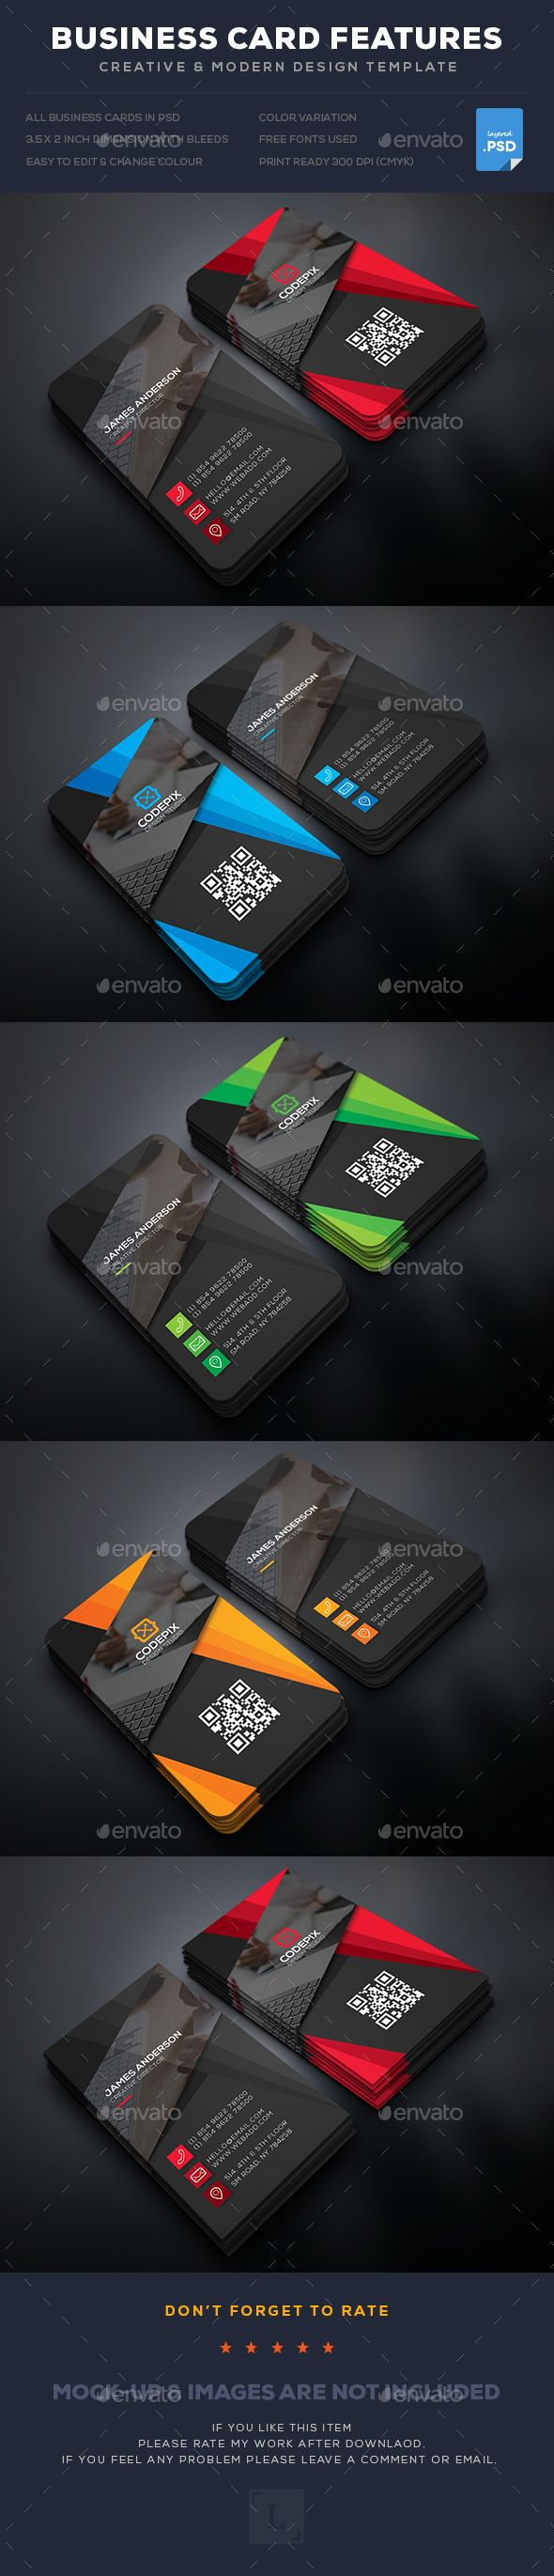 30 best identitas images on pinterest business cards card creative business card business card templatespsd magicingreecefo Image collections